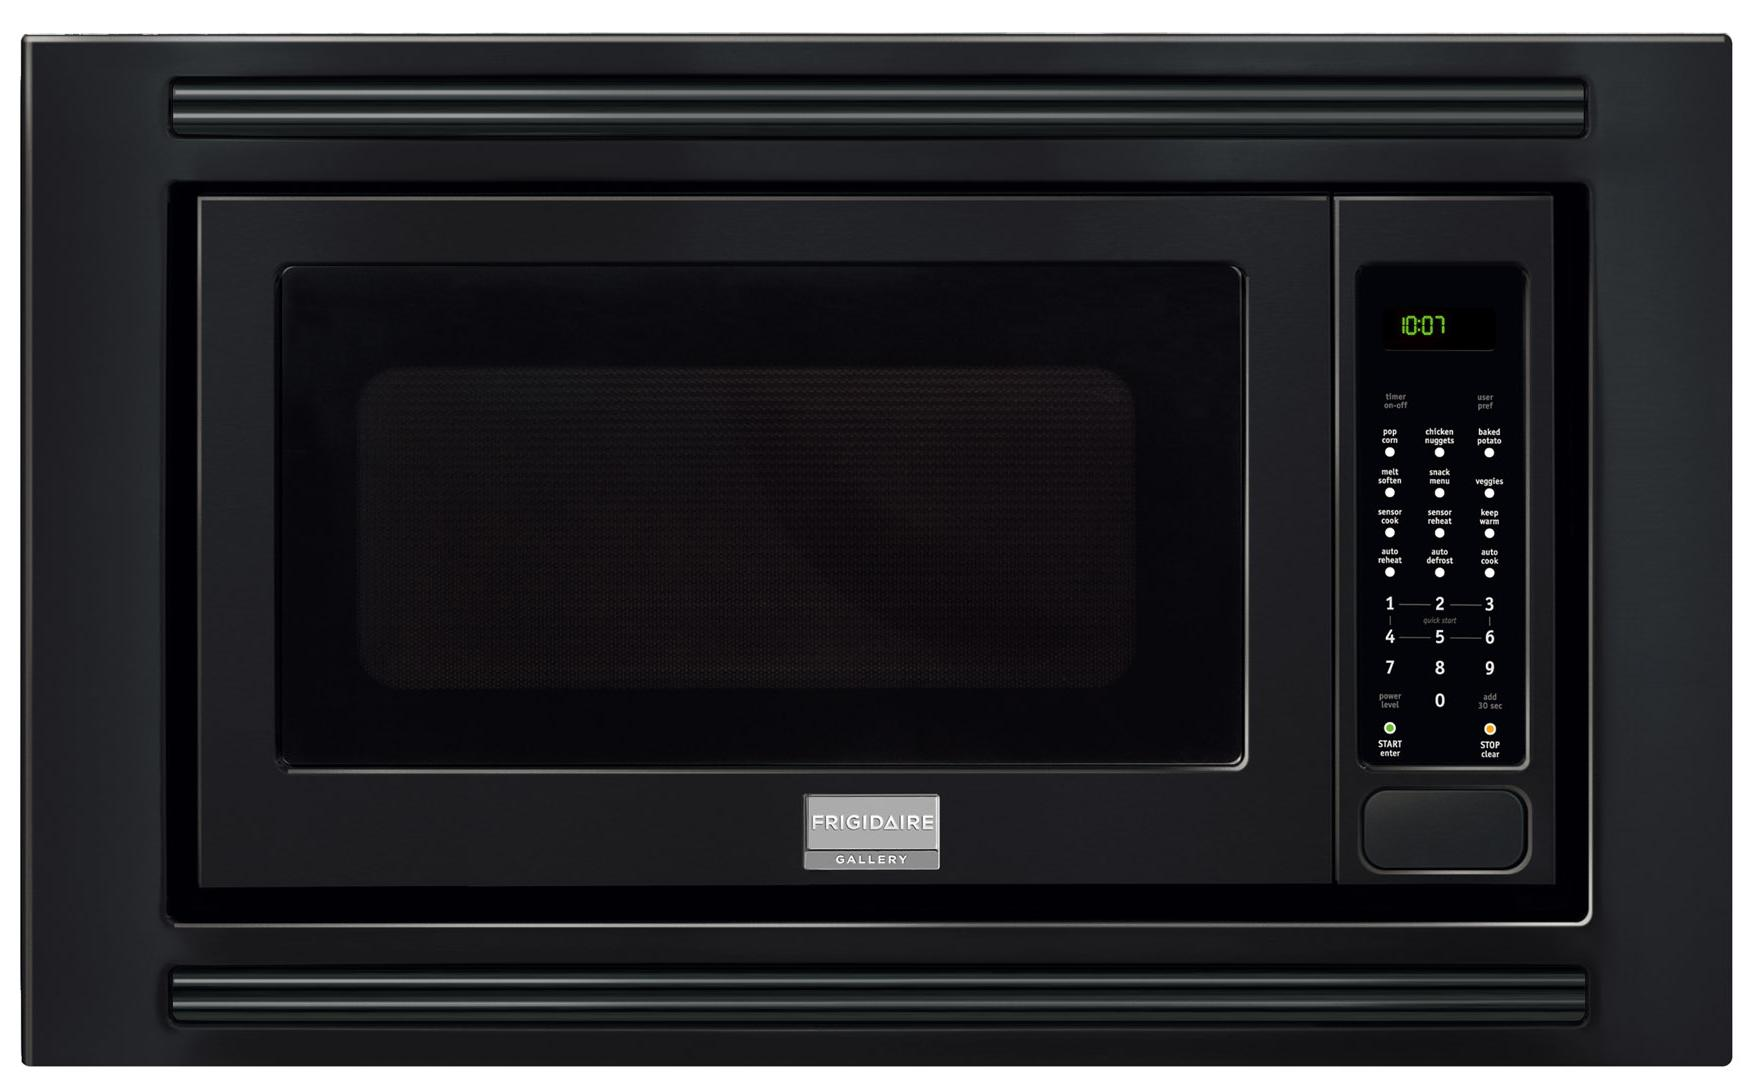 Frigidaire Microwaves 2.0 Cu. Ft. Built-In Microwave - Item Number: FGMO205KB